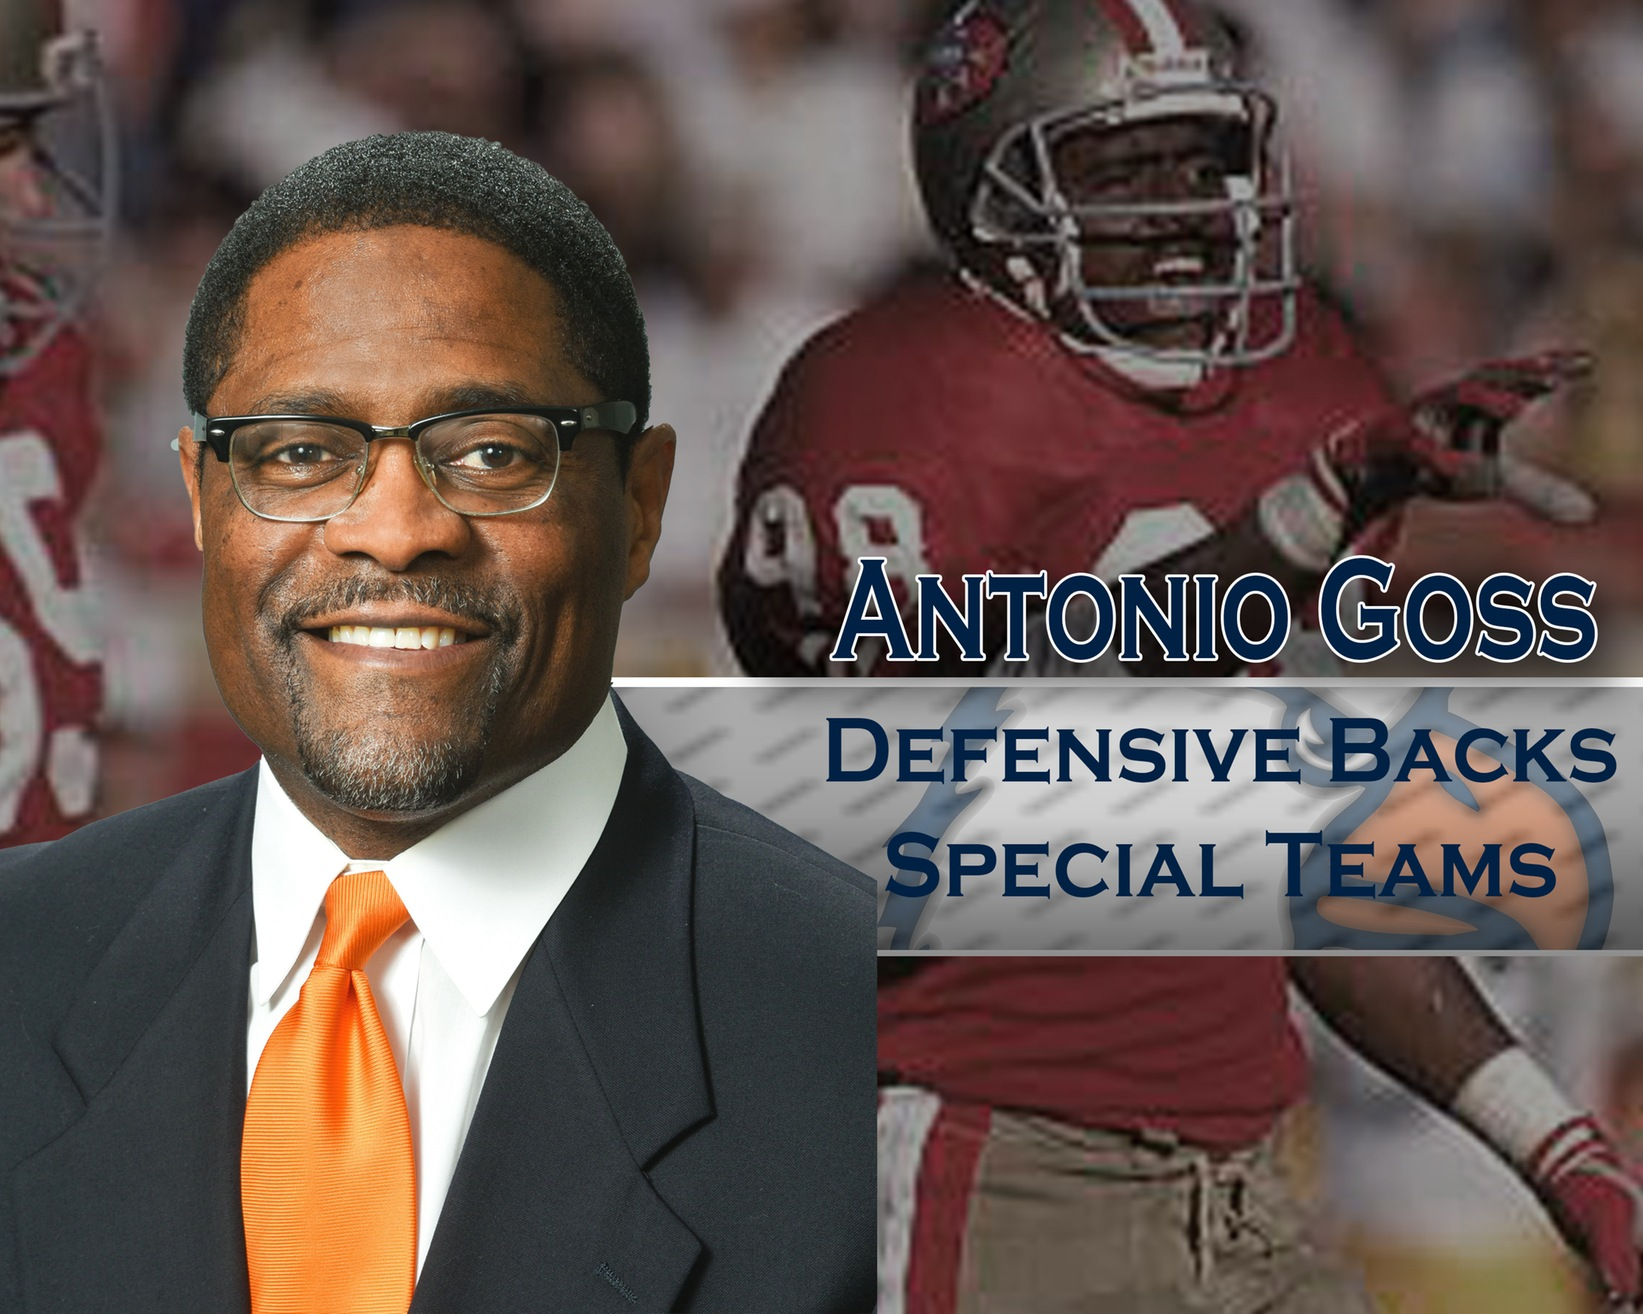 Turner announces Goss as new defensive backs and special teams coach